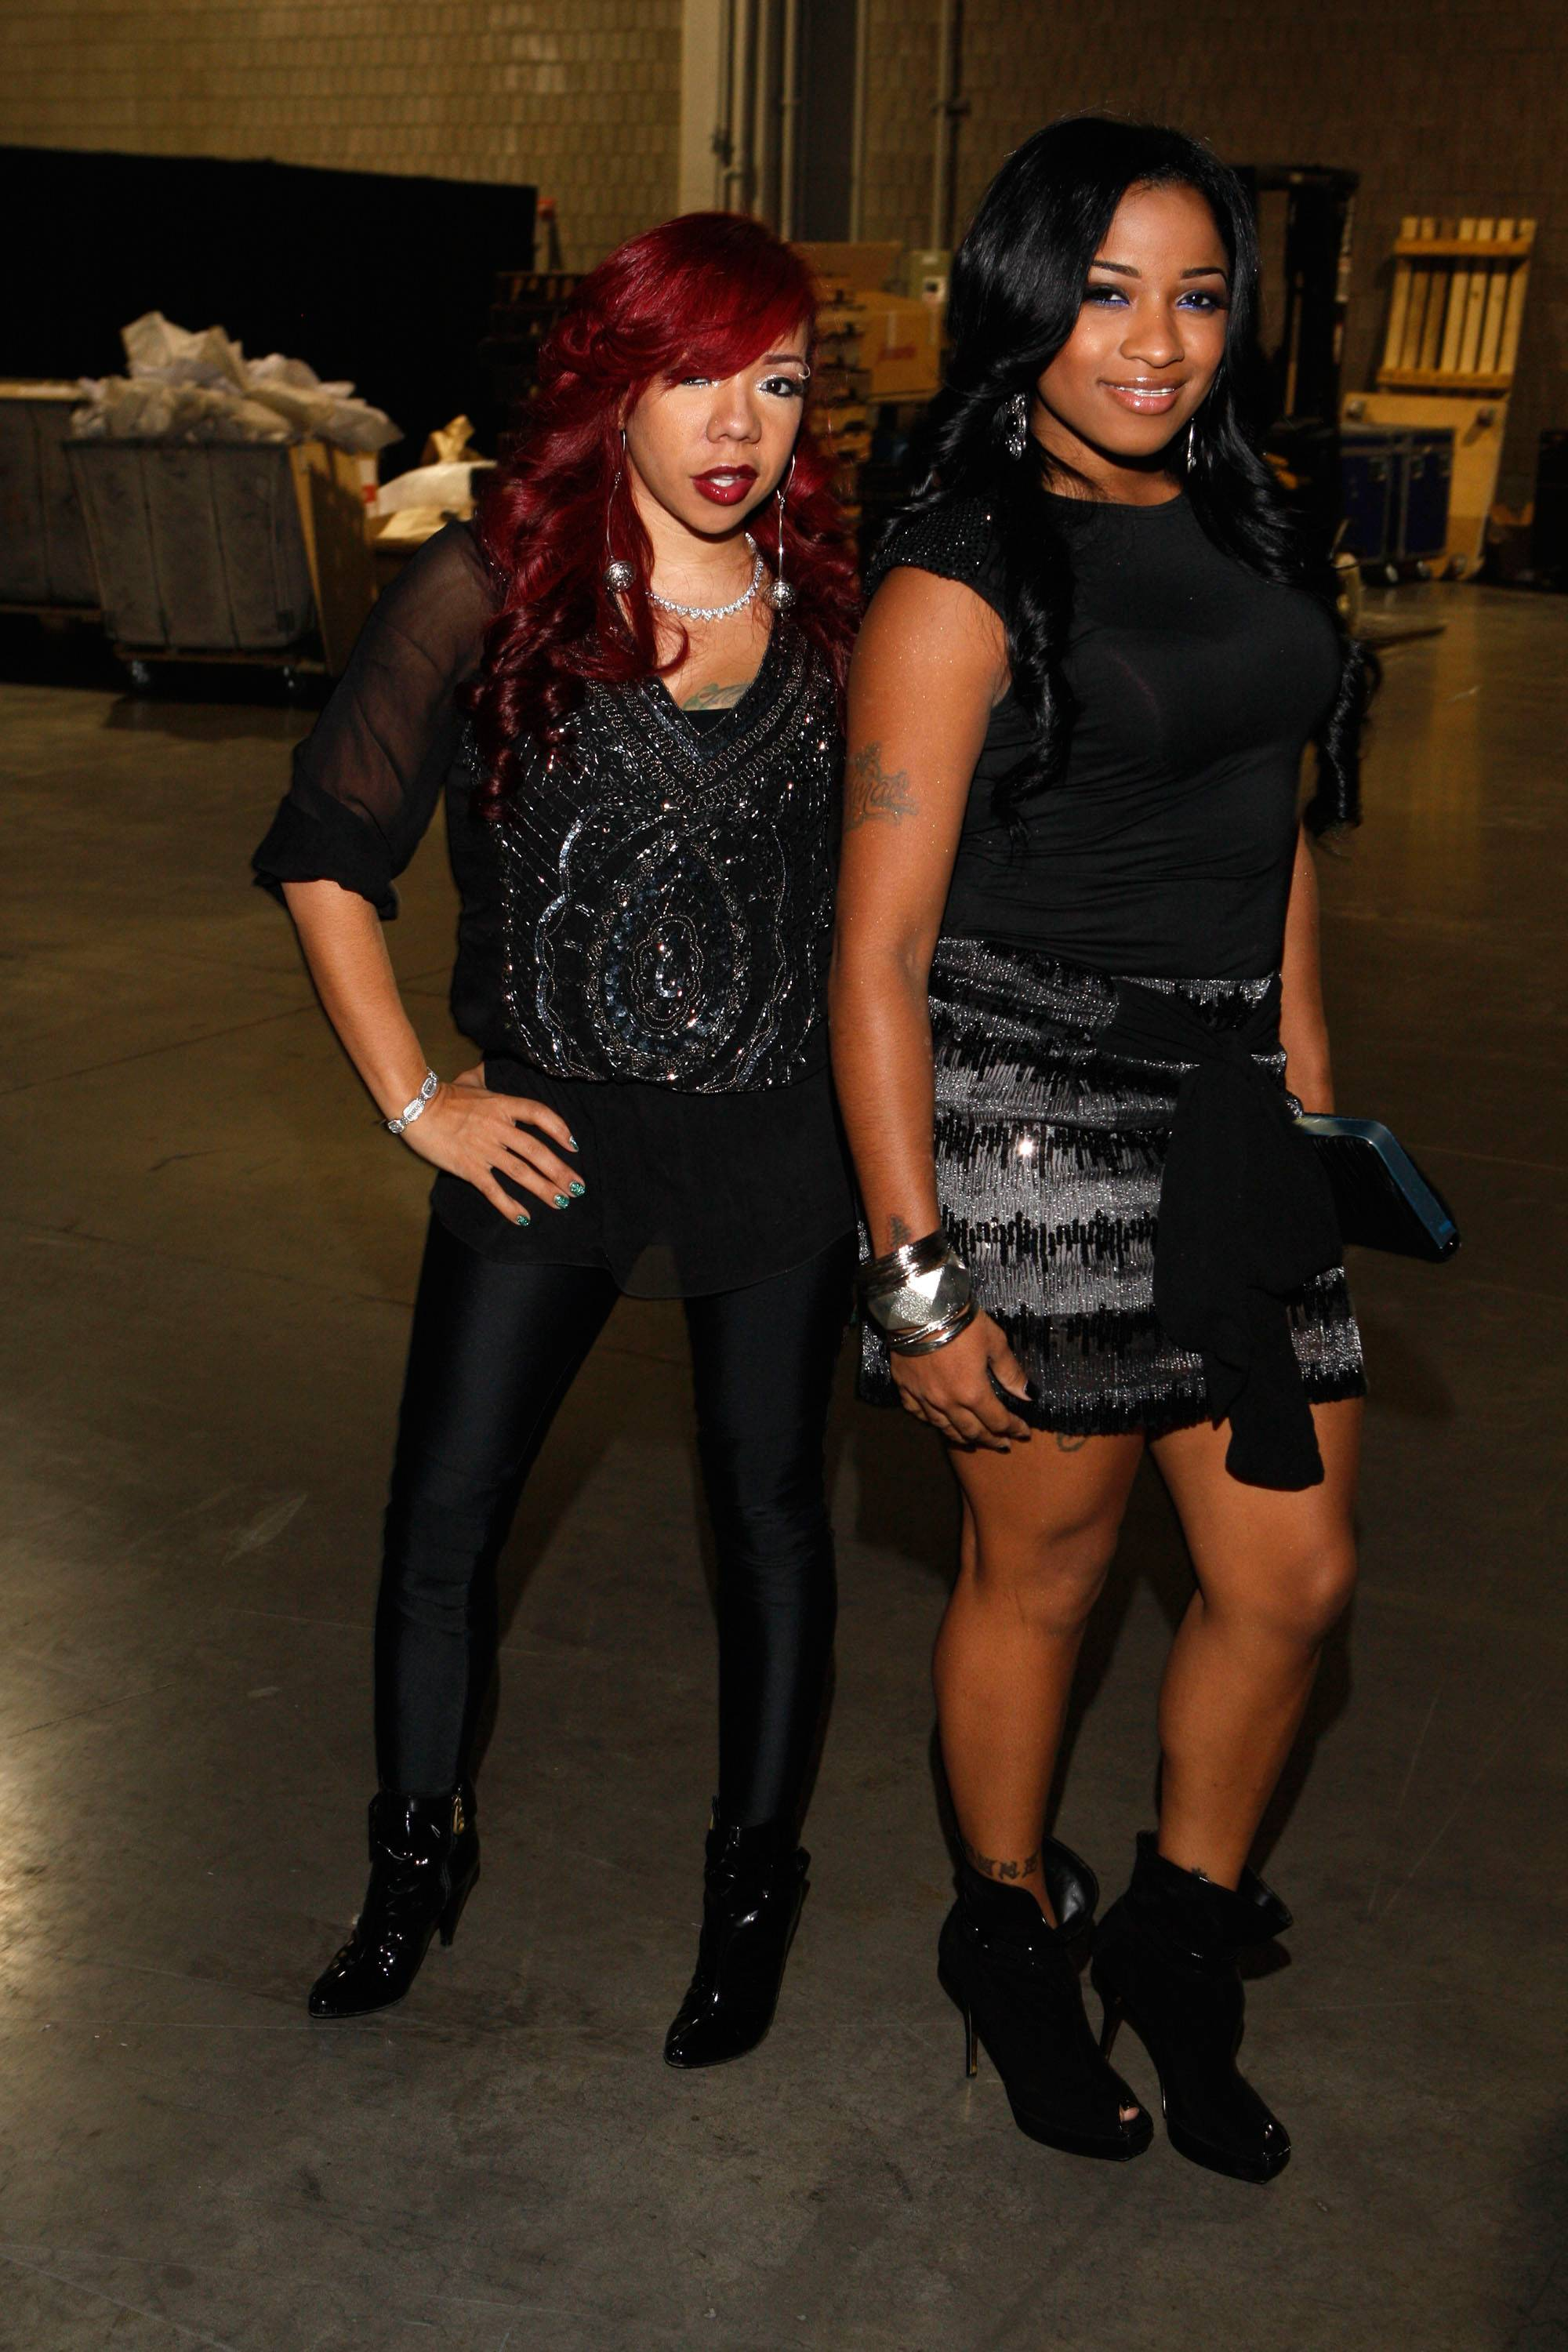 Tiny & Toya - These two did a reality show chronicling their journey as friends. We got to see up-close how raising their kids and having superstar rappers in their lives brought them together. (Photo: Ben Rose/PictureGroup)